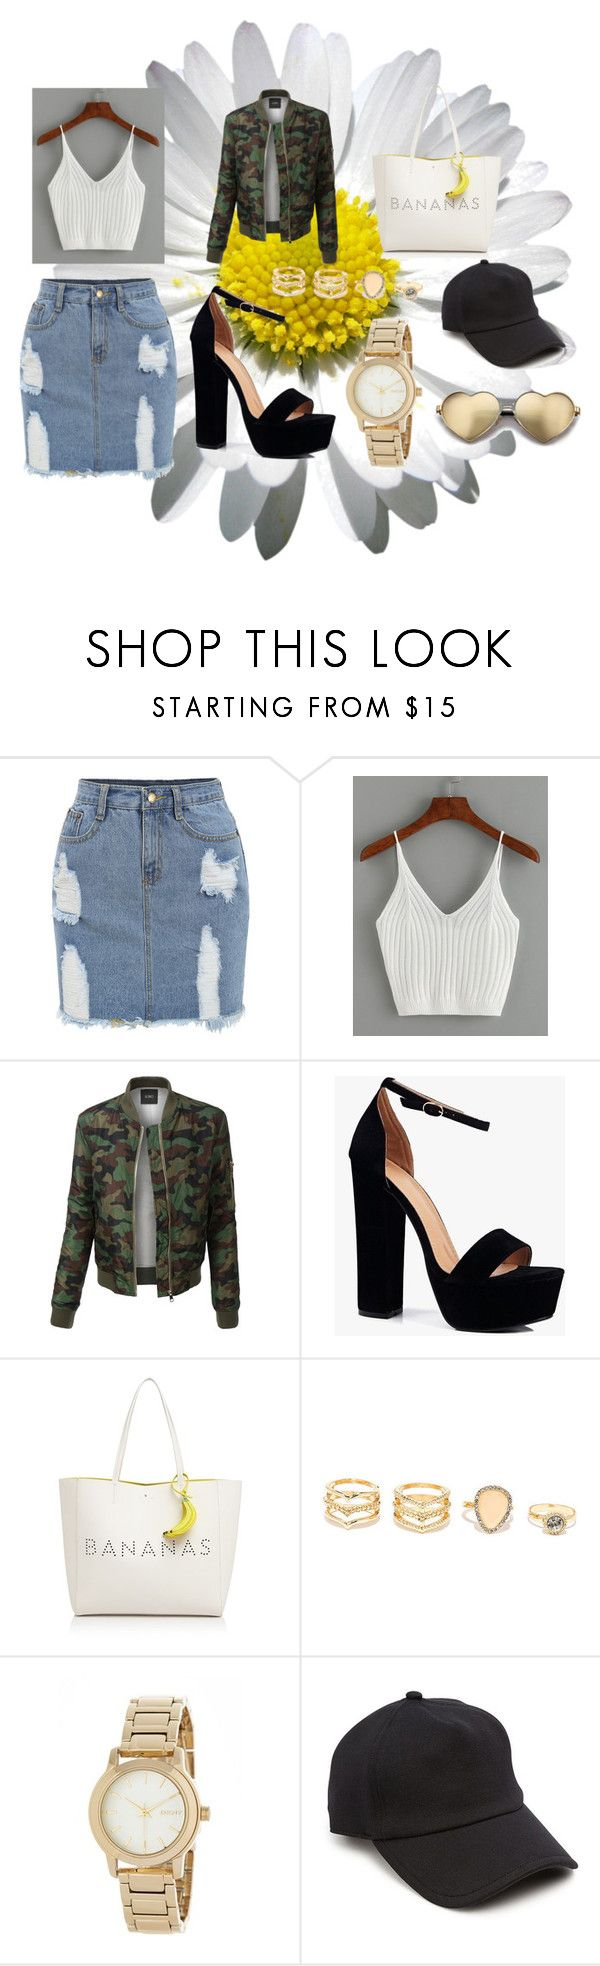 """""""Rihanna inspired look"""" by lineocarol on Polyvore featuring LE3NO, Boohoo, Kate Spade, LULUS, DKNY, rag & bone and Wildfox"""